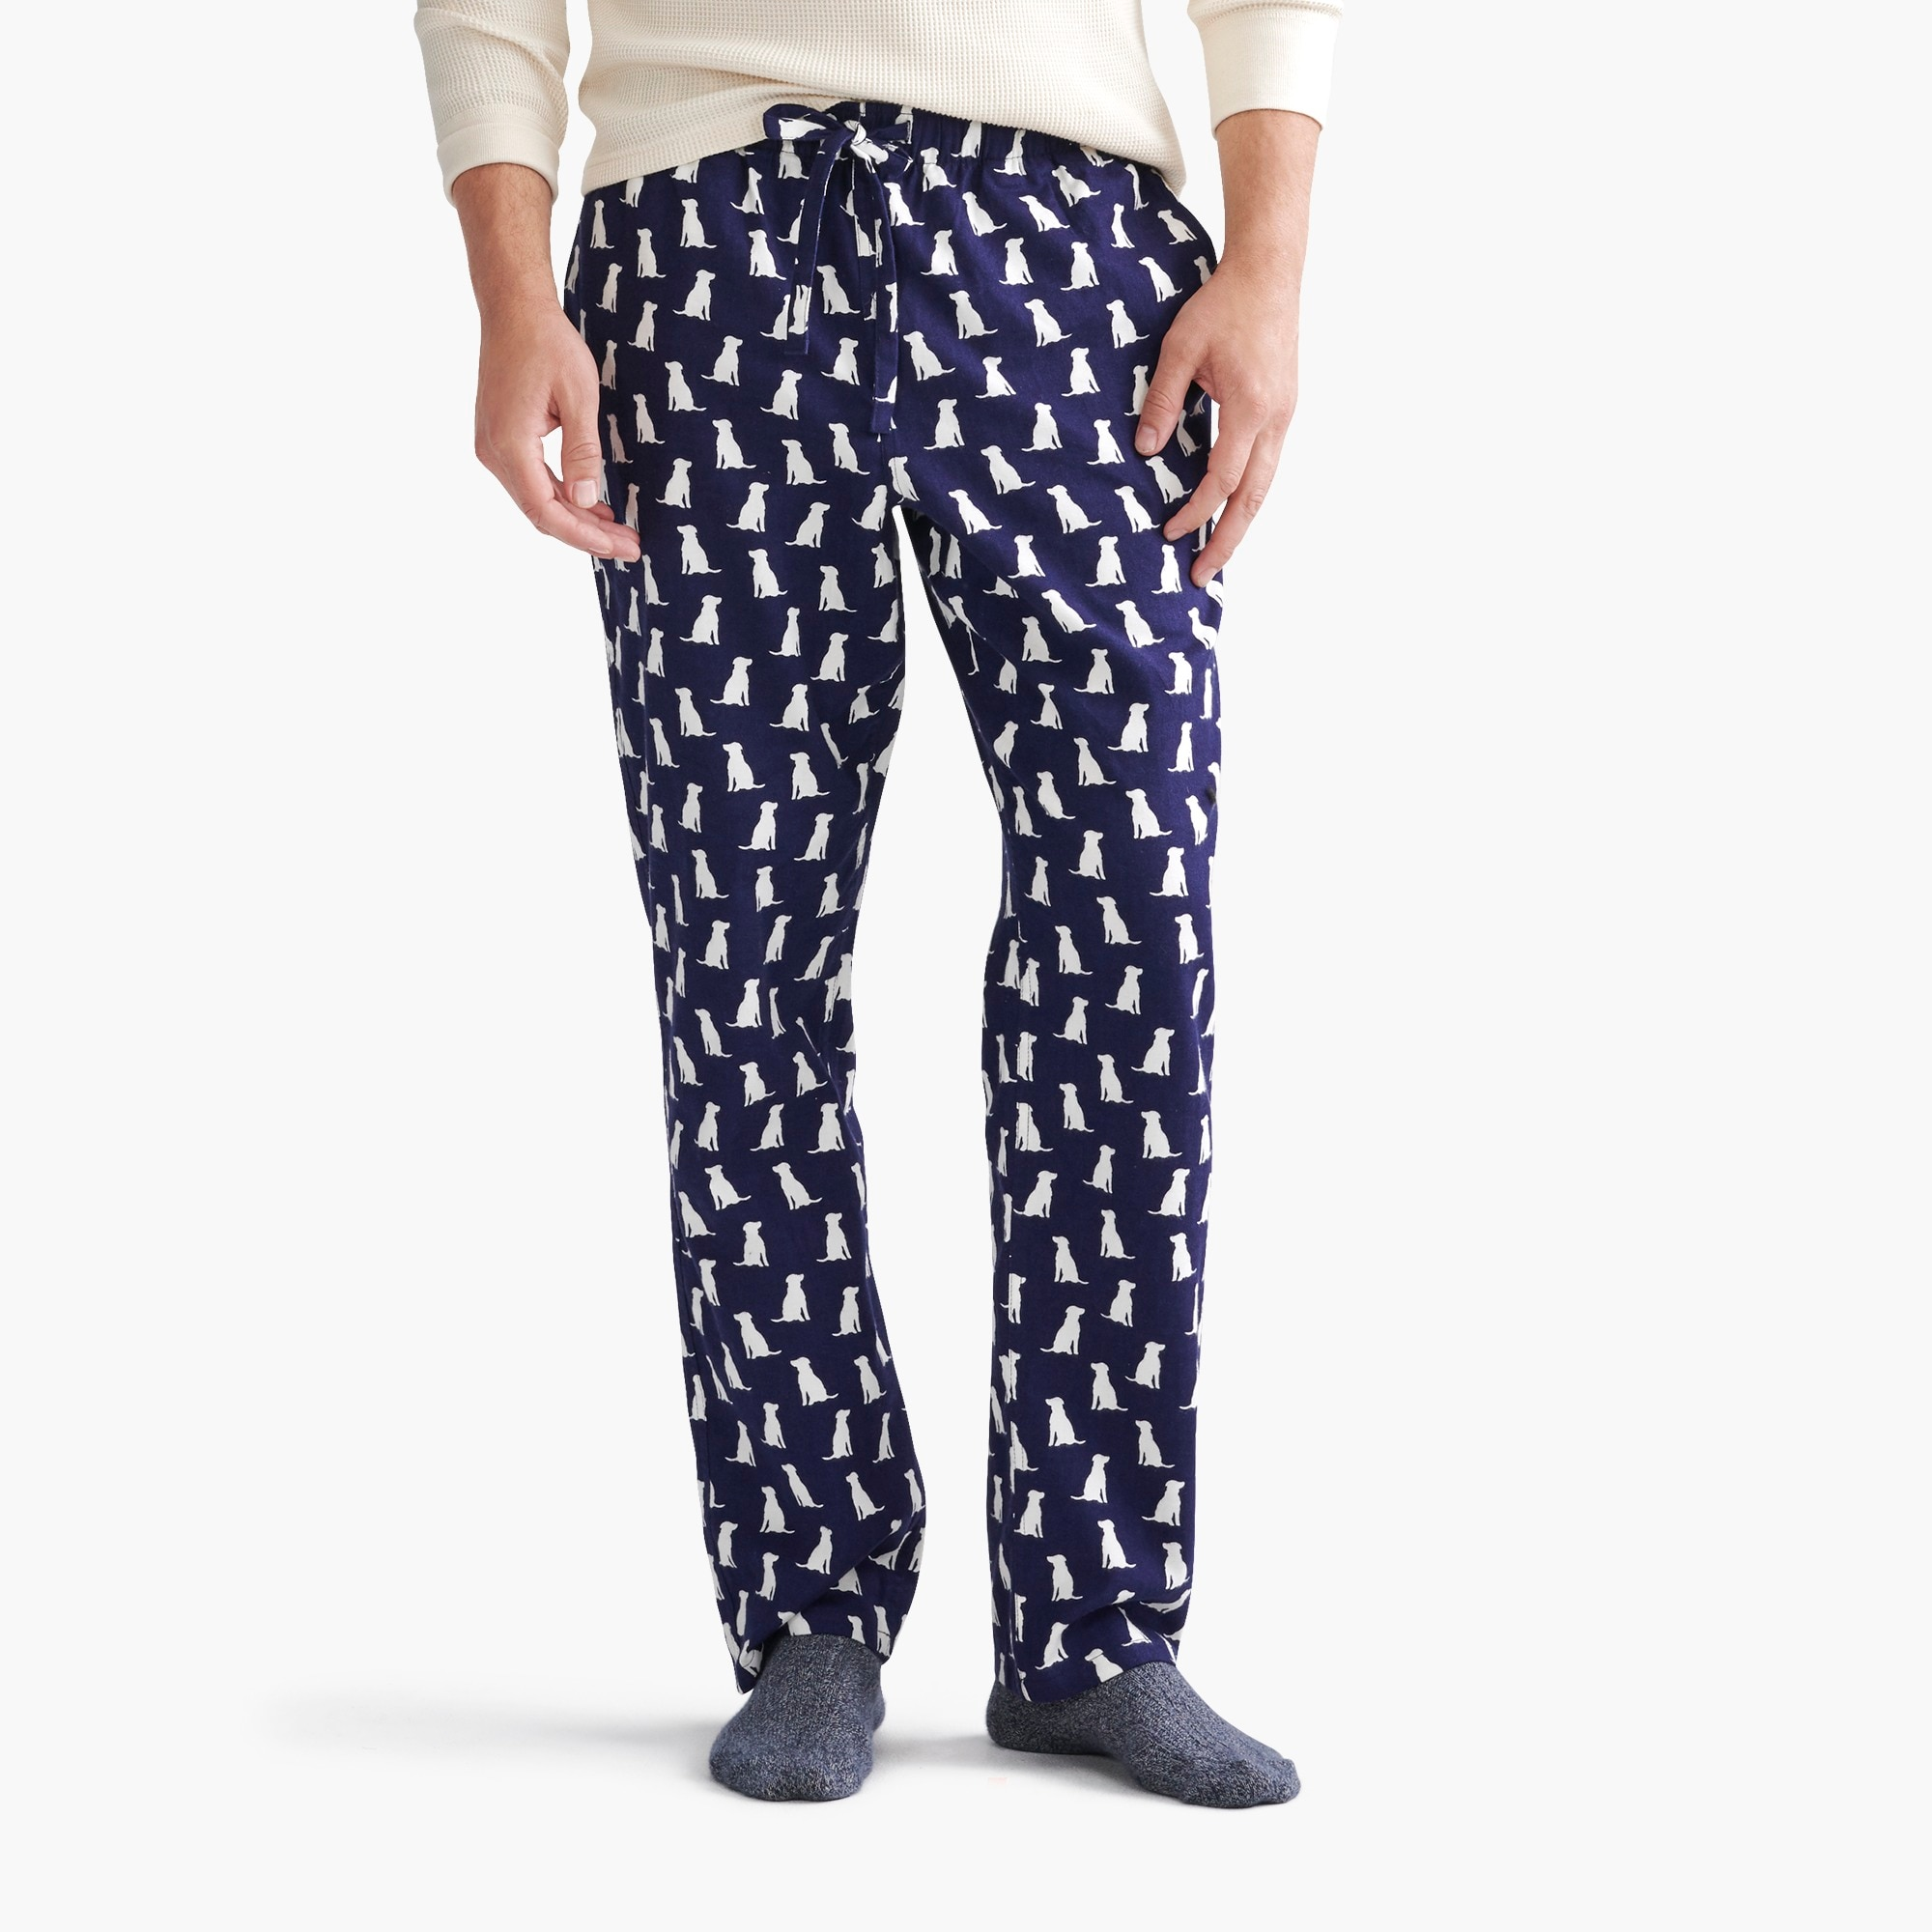 Image 1 for Labrador flannel pajama pant